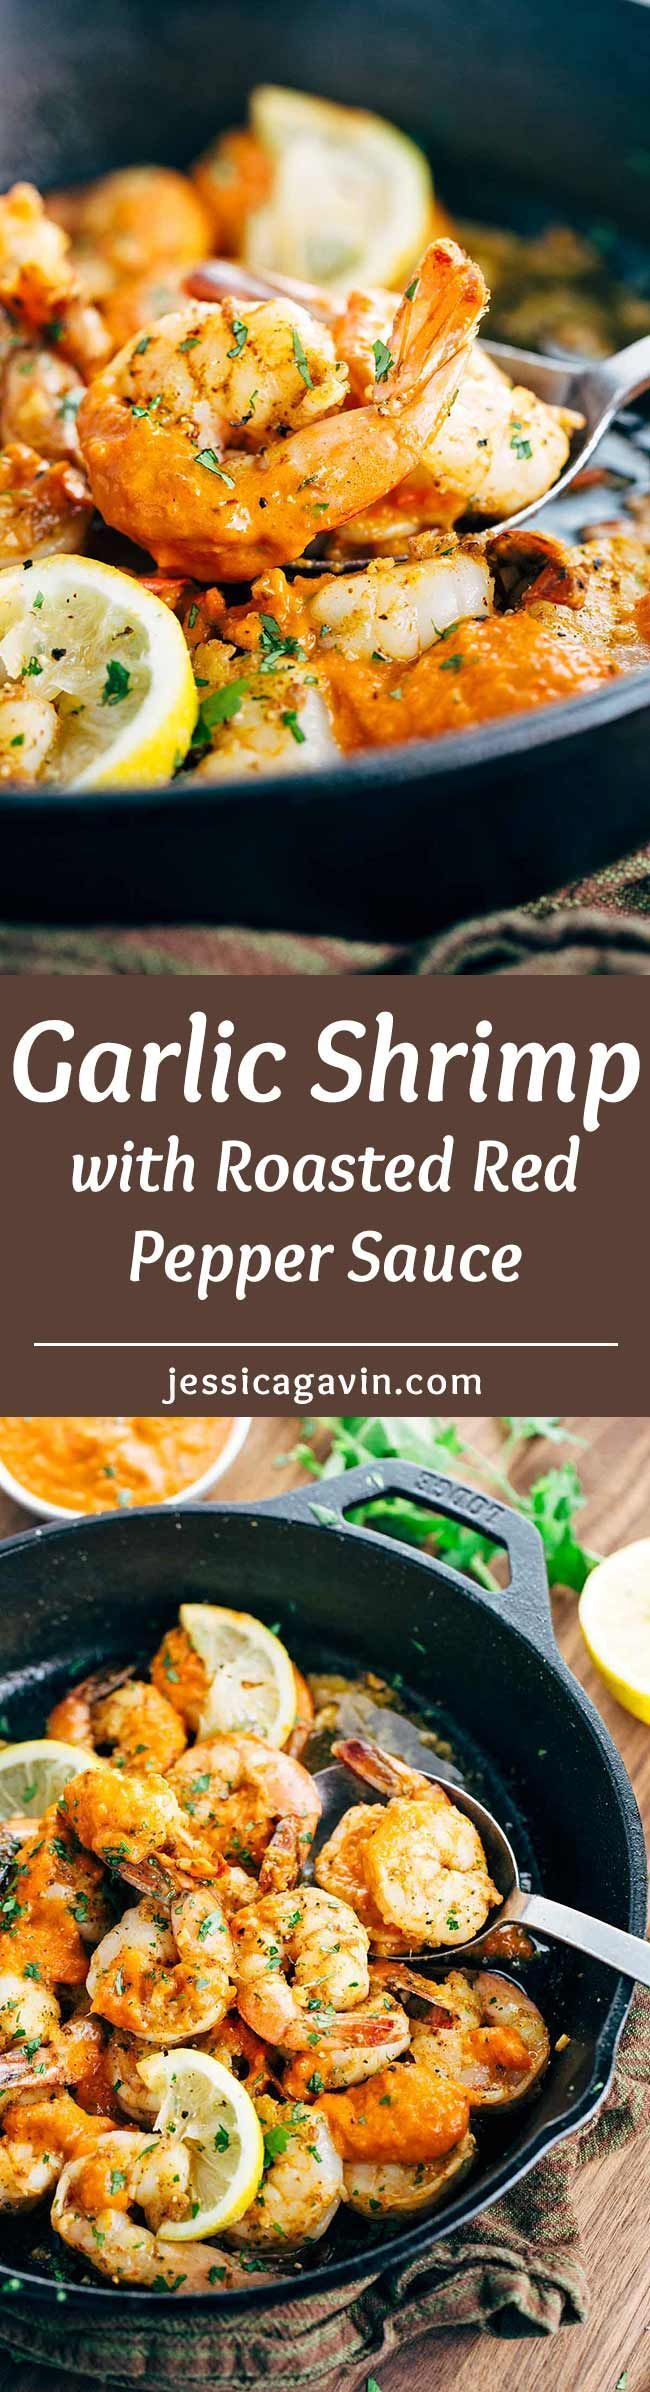 Garlic Shrimp Skillet with Roasted Red Pepper Sauce - Healthy and fast recipe with a savory pureed vegetable sauce. | http://jessicagavin.com